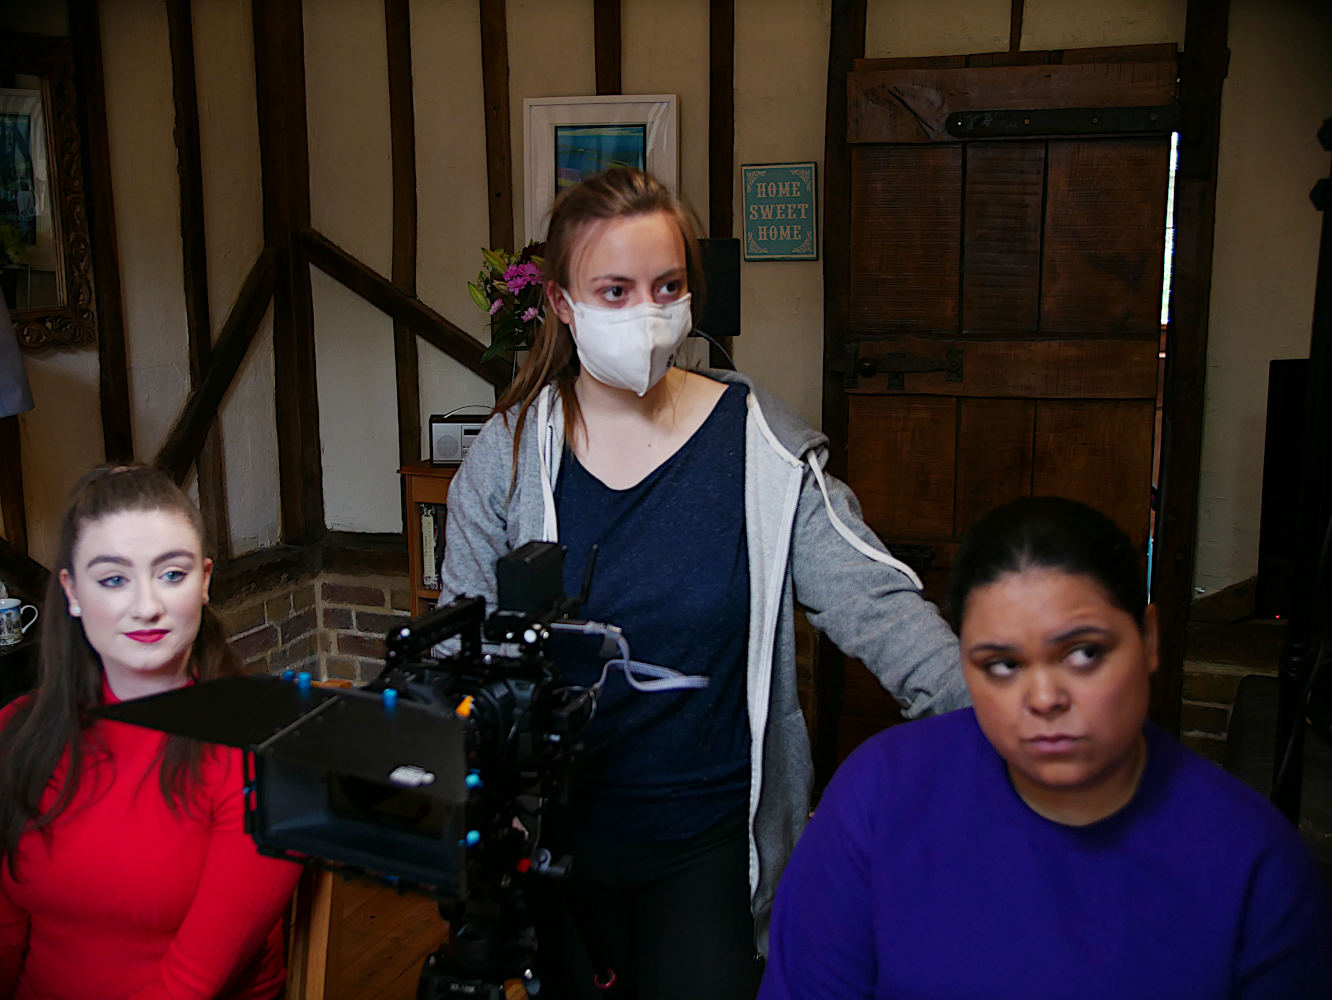 Behind the scenes photo from Movement Films production